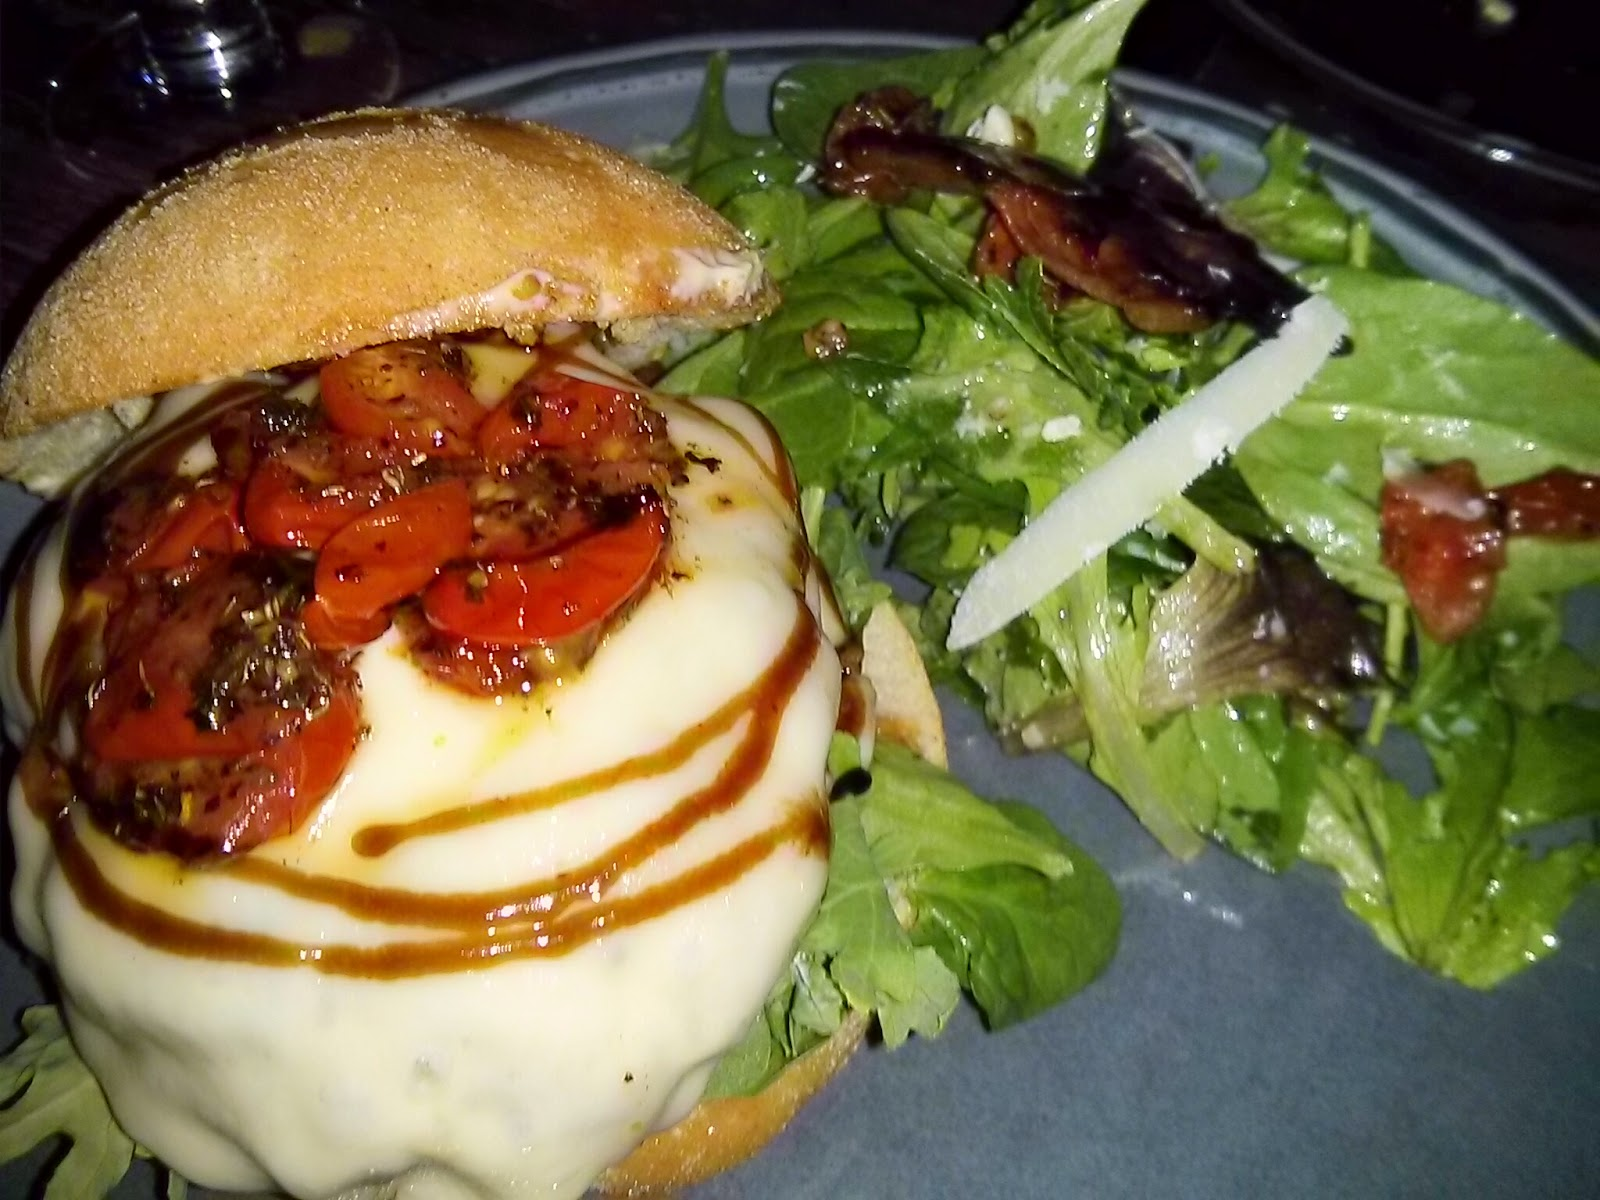 ... Burger: Oven-dried tomatoes, caramelized onions, and lemon caper mayo